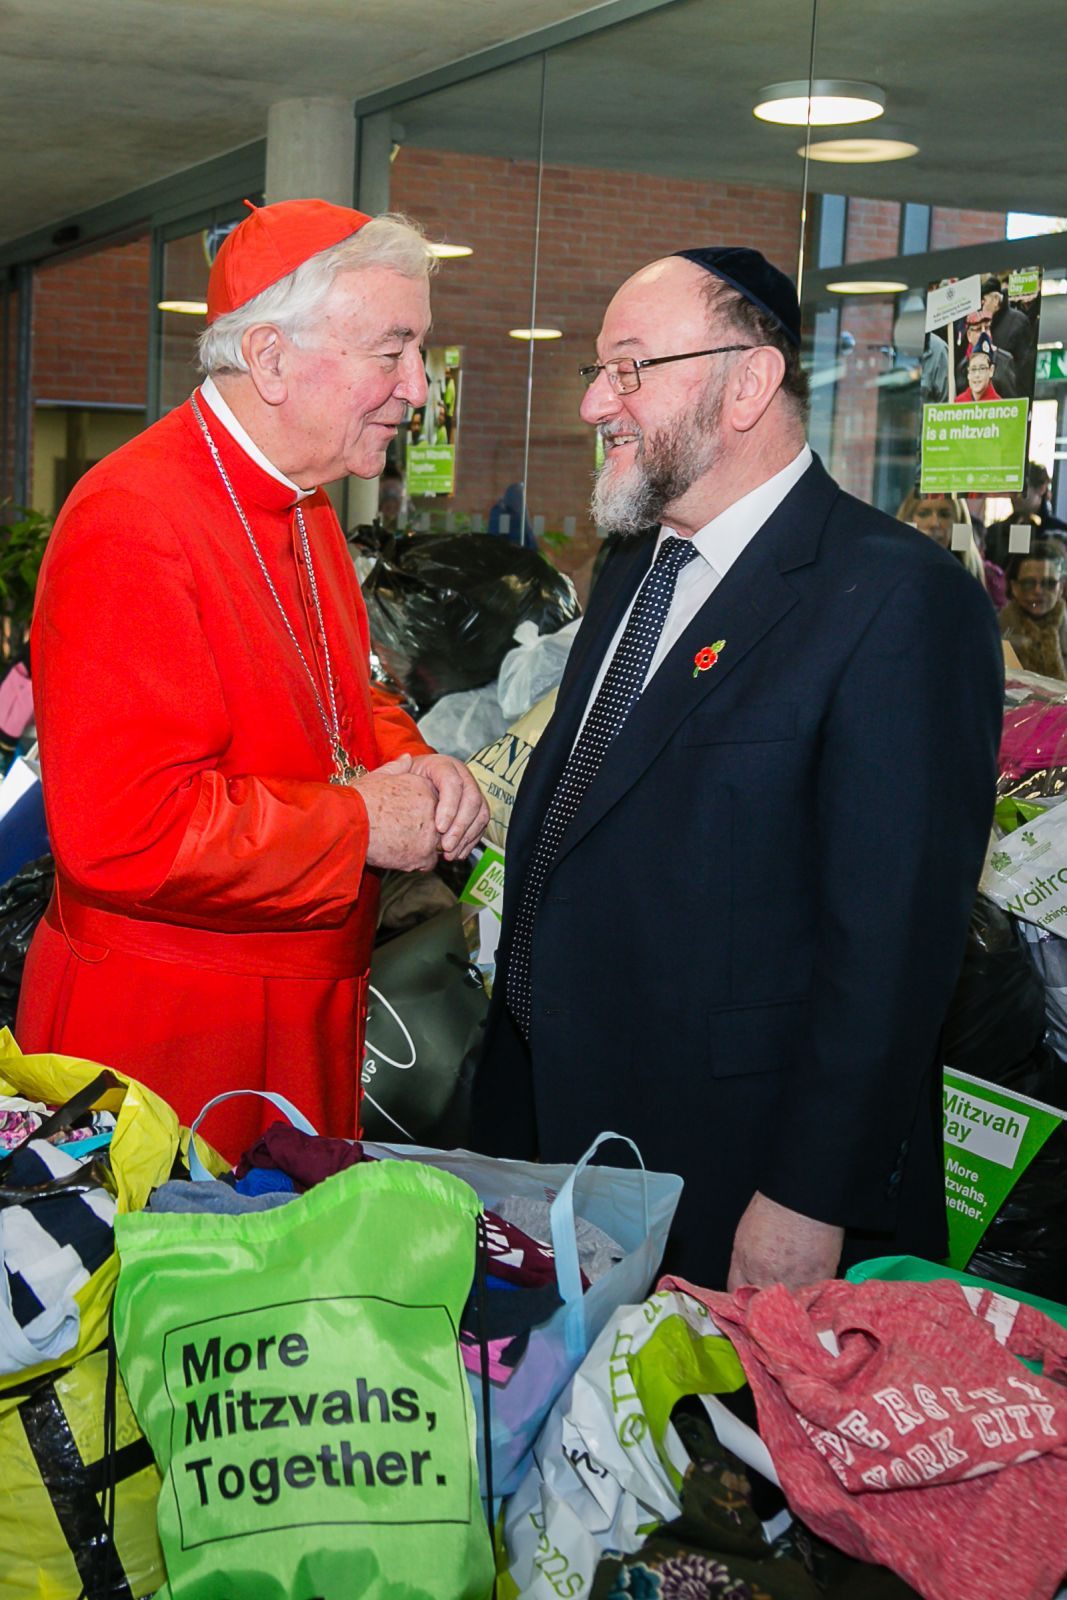 Cardinal Nichols and Chief Rabbi sort clothes for the homeless at South Hampstead School - picture by Yakir Zur